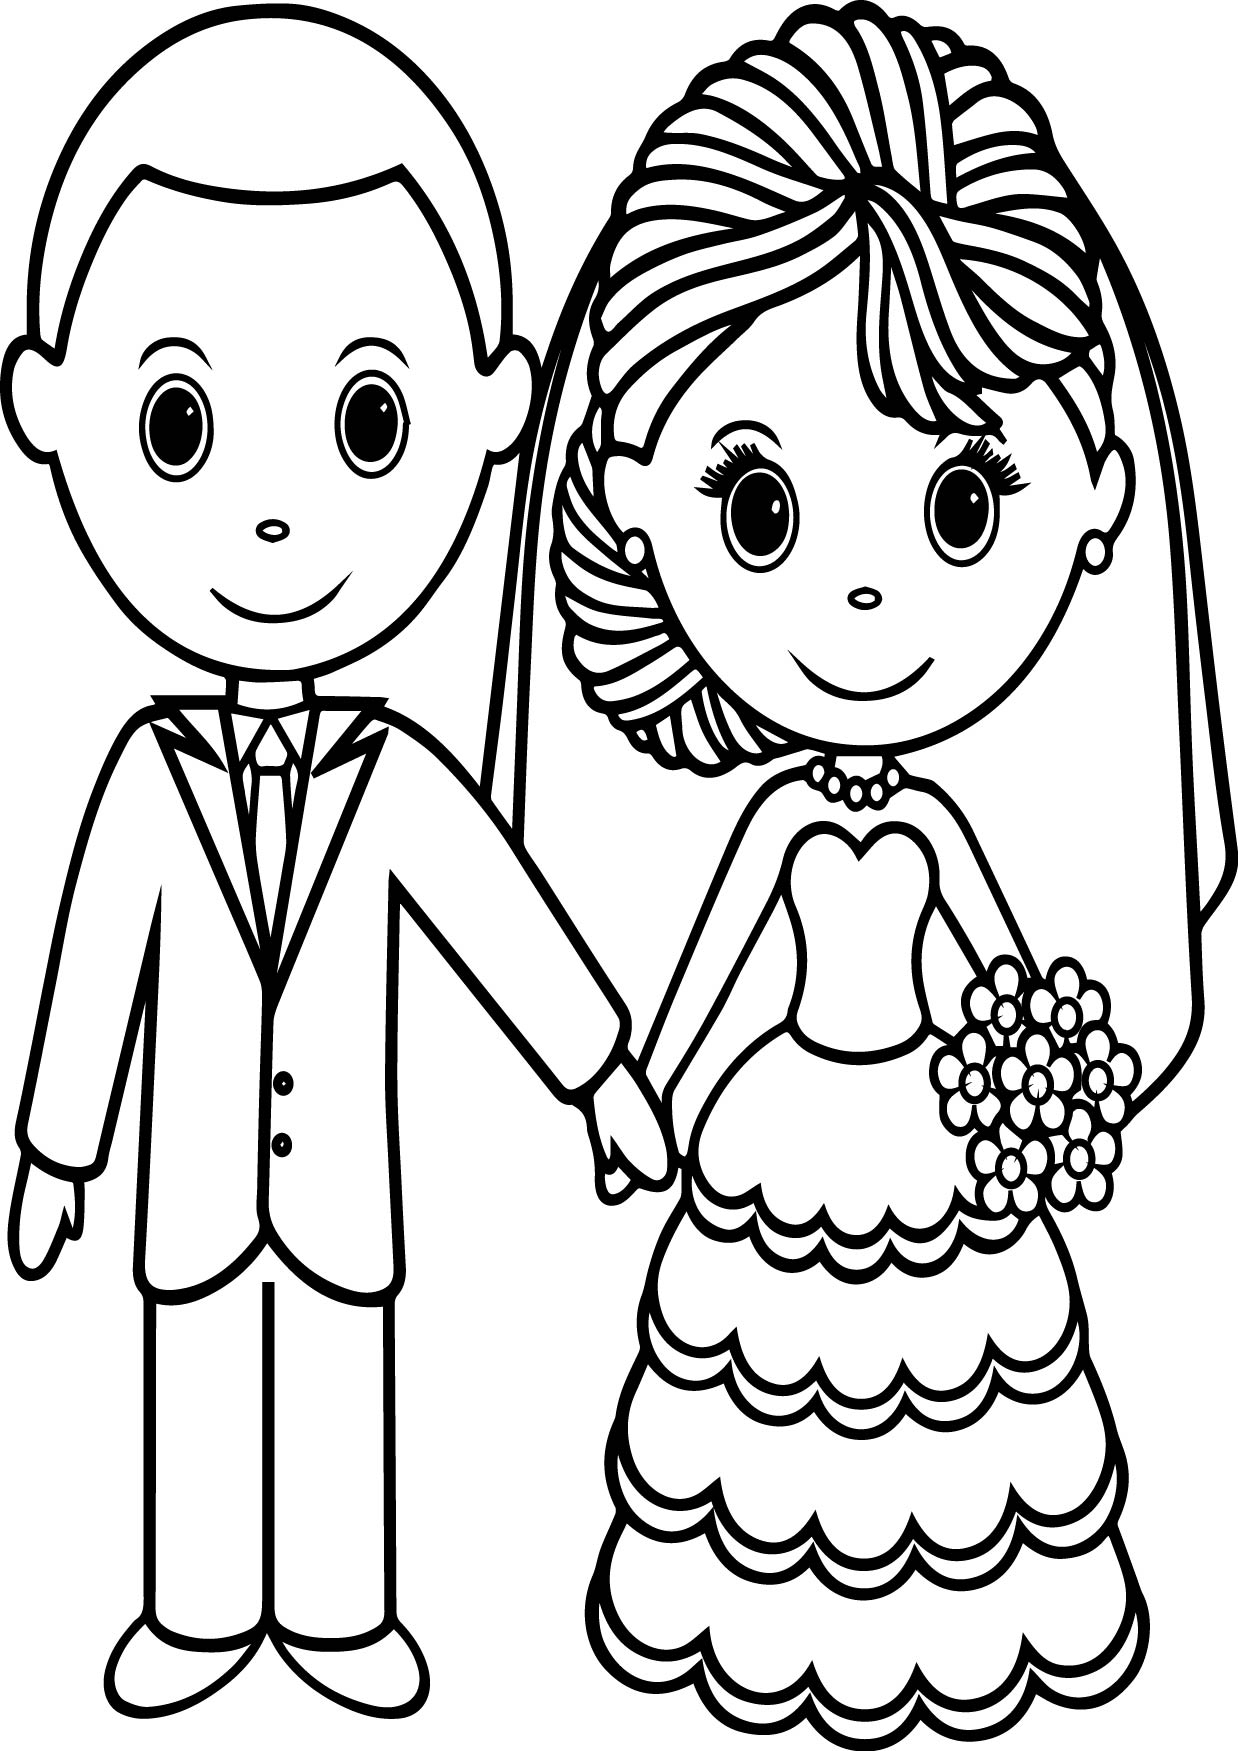 Kids Bride and Groomring Pages Free for Teens Wedding Chocolate Cake ...